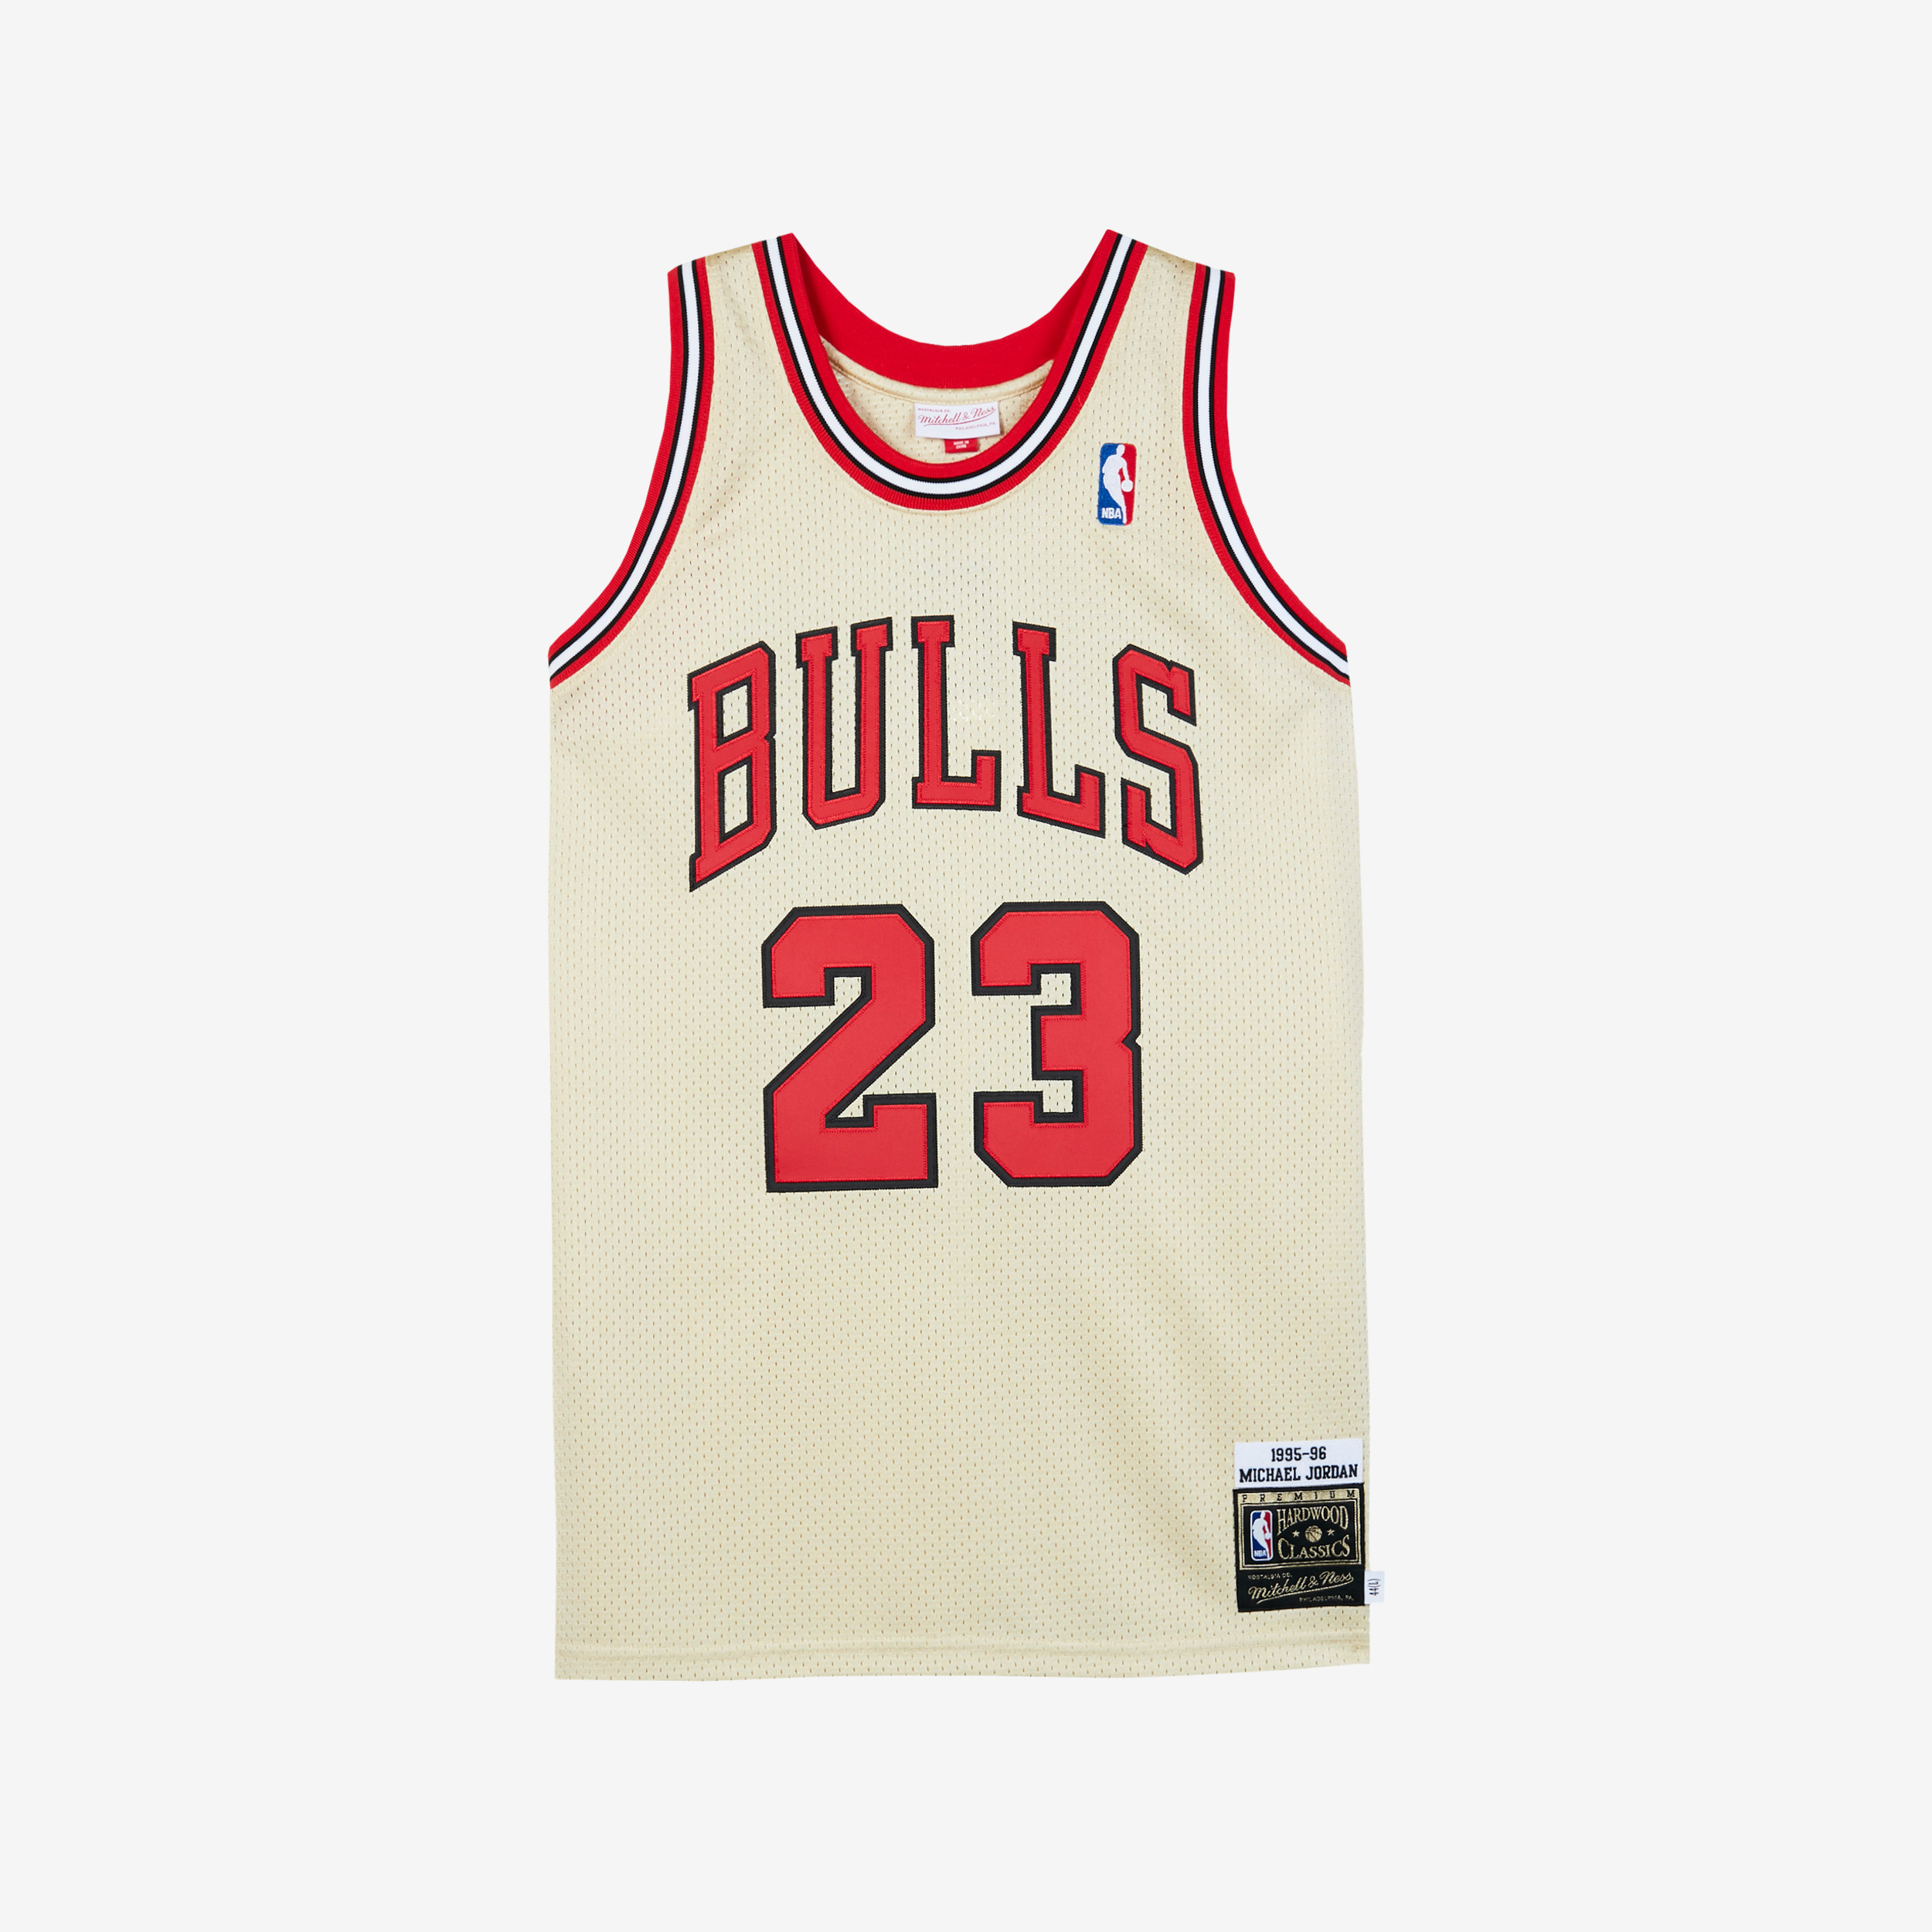 promo code 75a61 f9723 Mitchell & Ness Gold Authentic Jersey - Michael Jordan ...